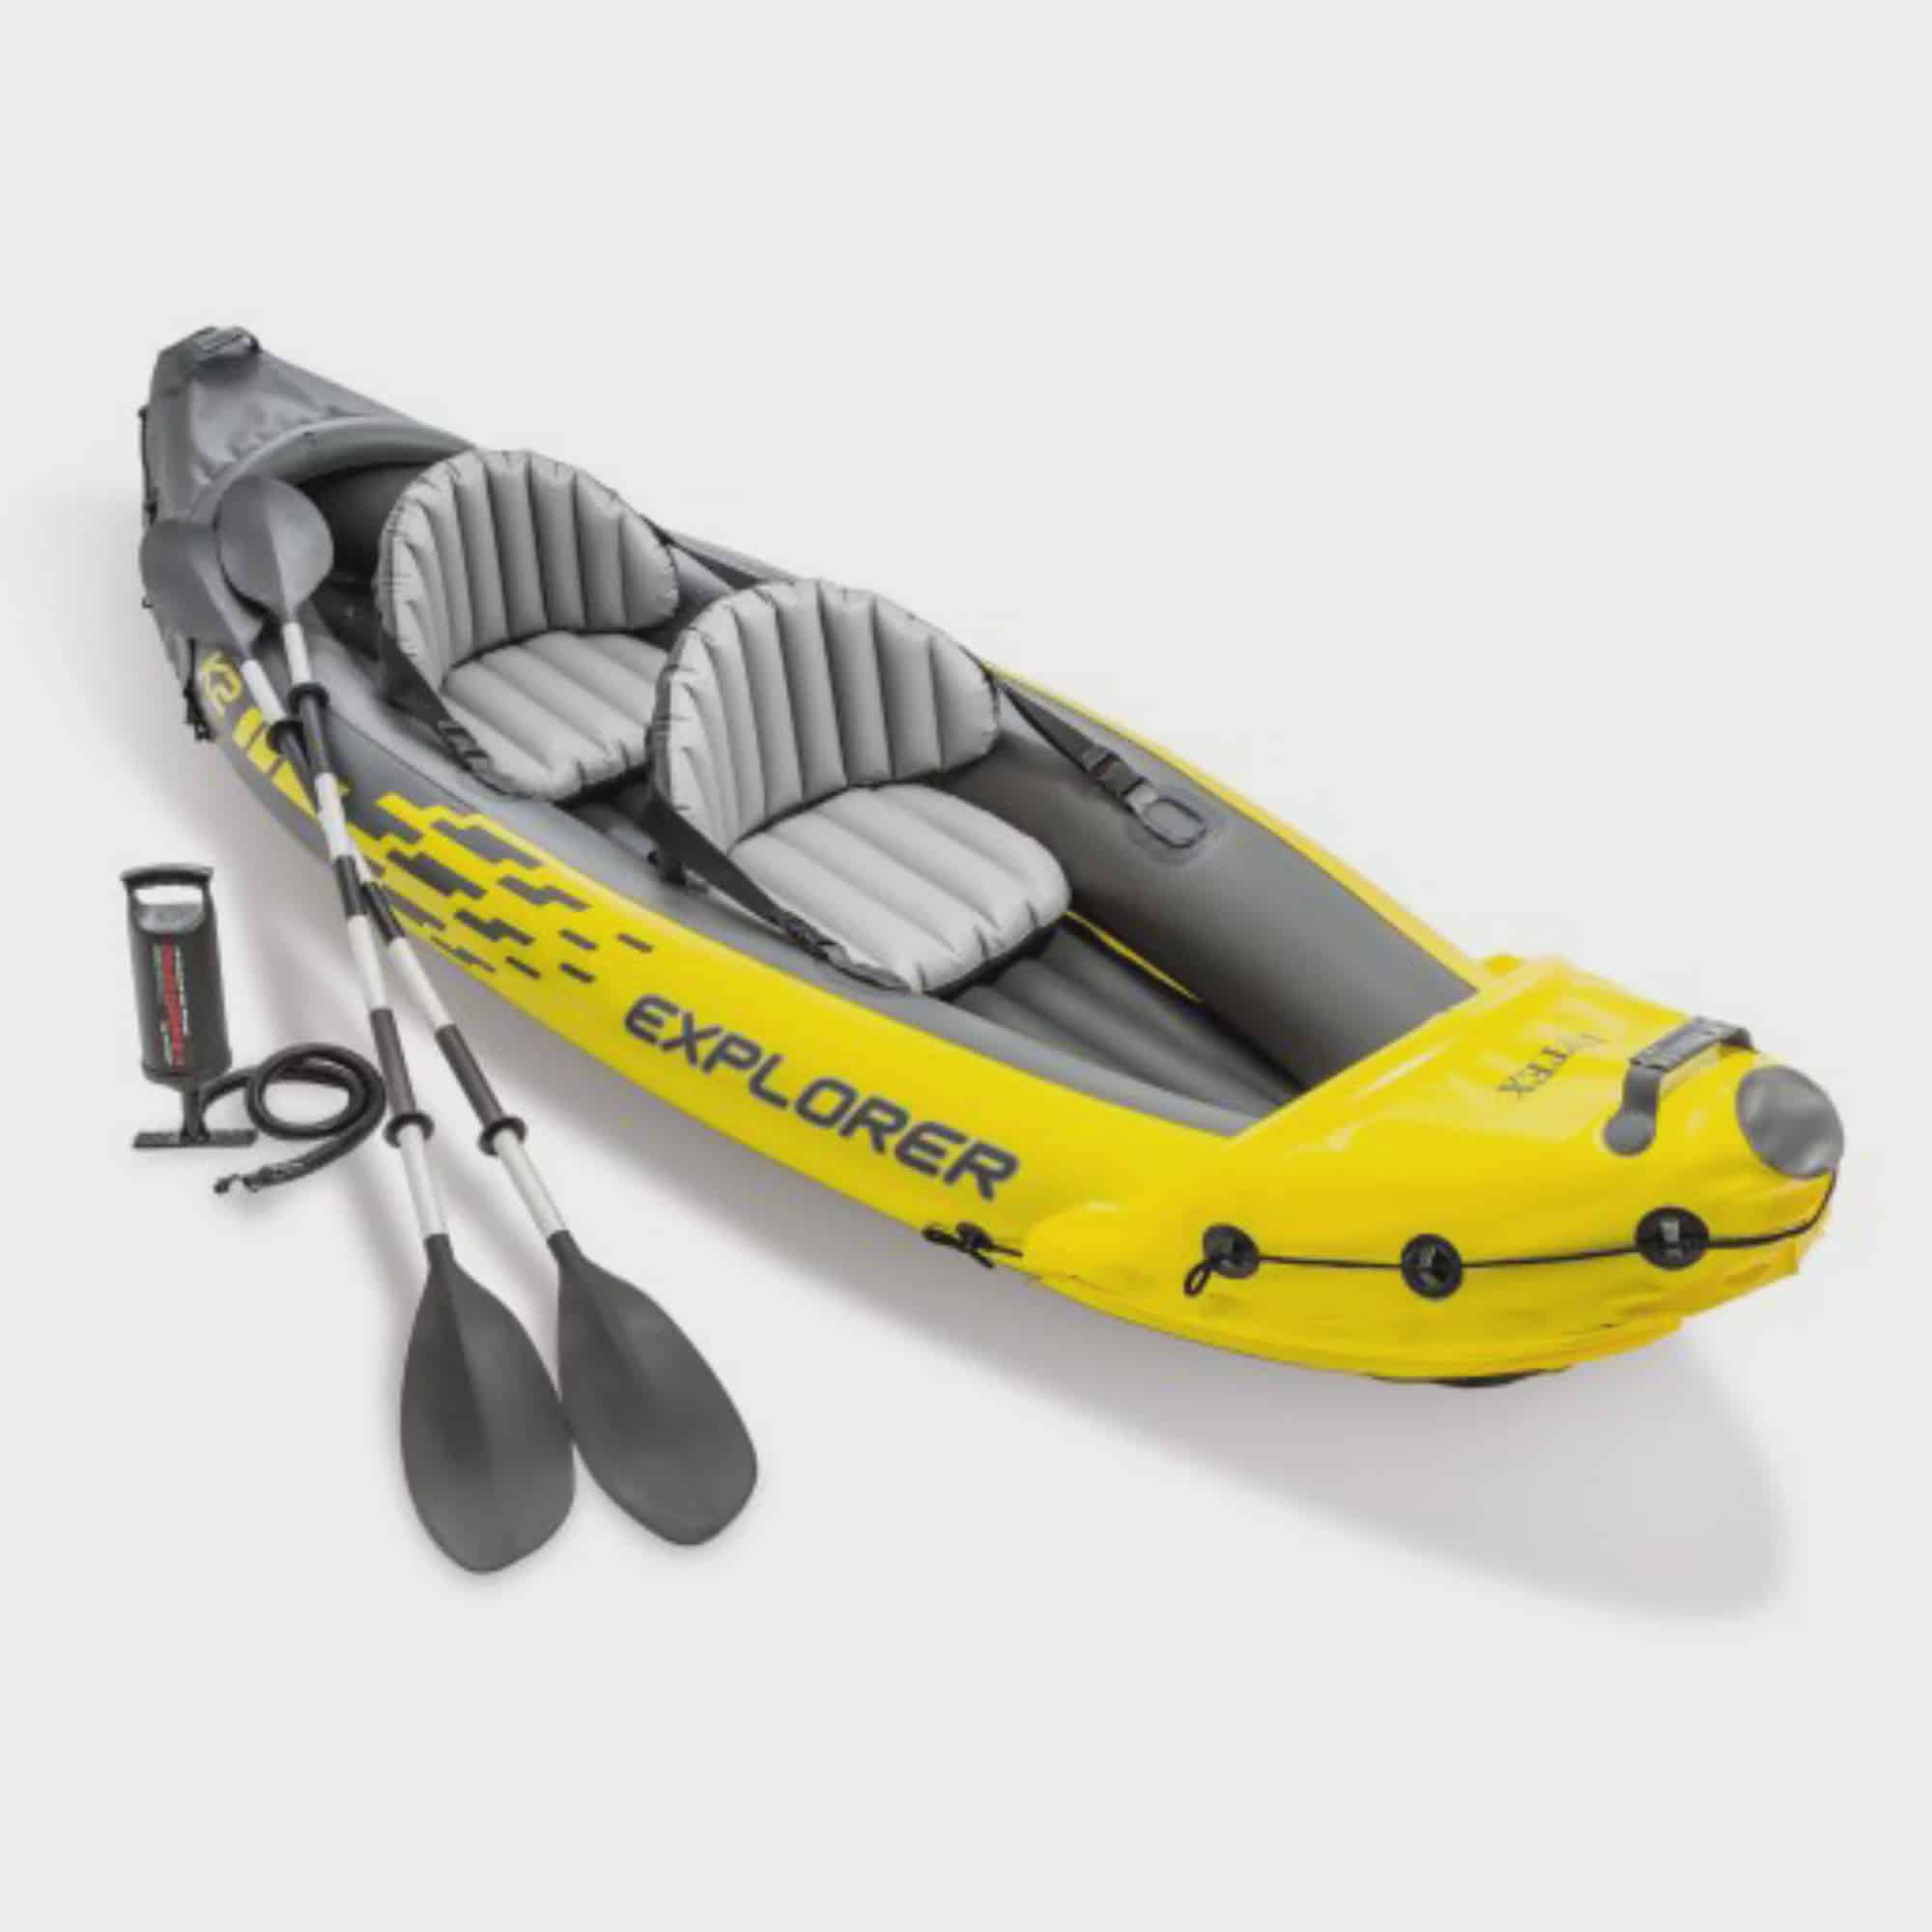 Intex Explorer K2 Kayak by Intex